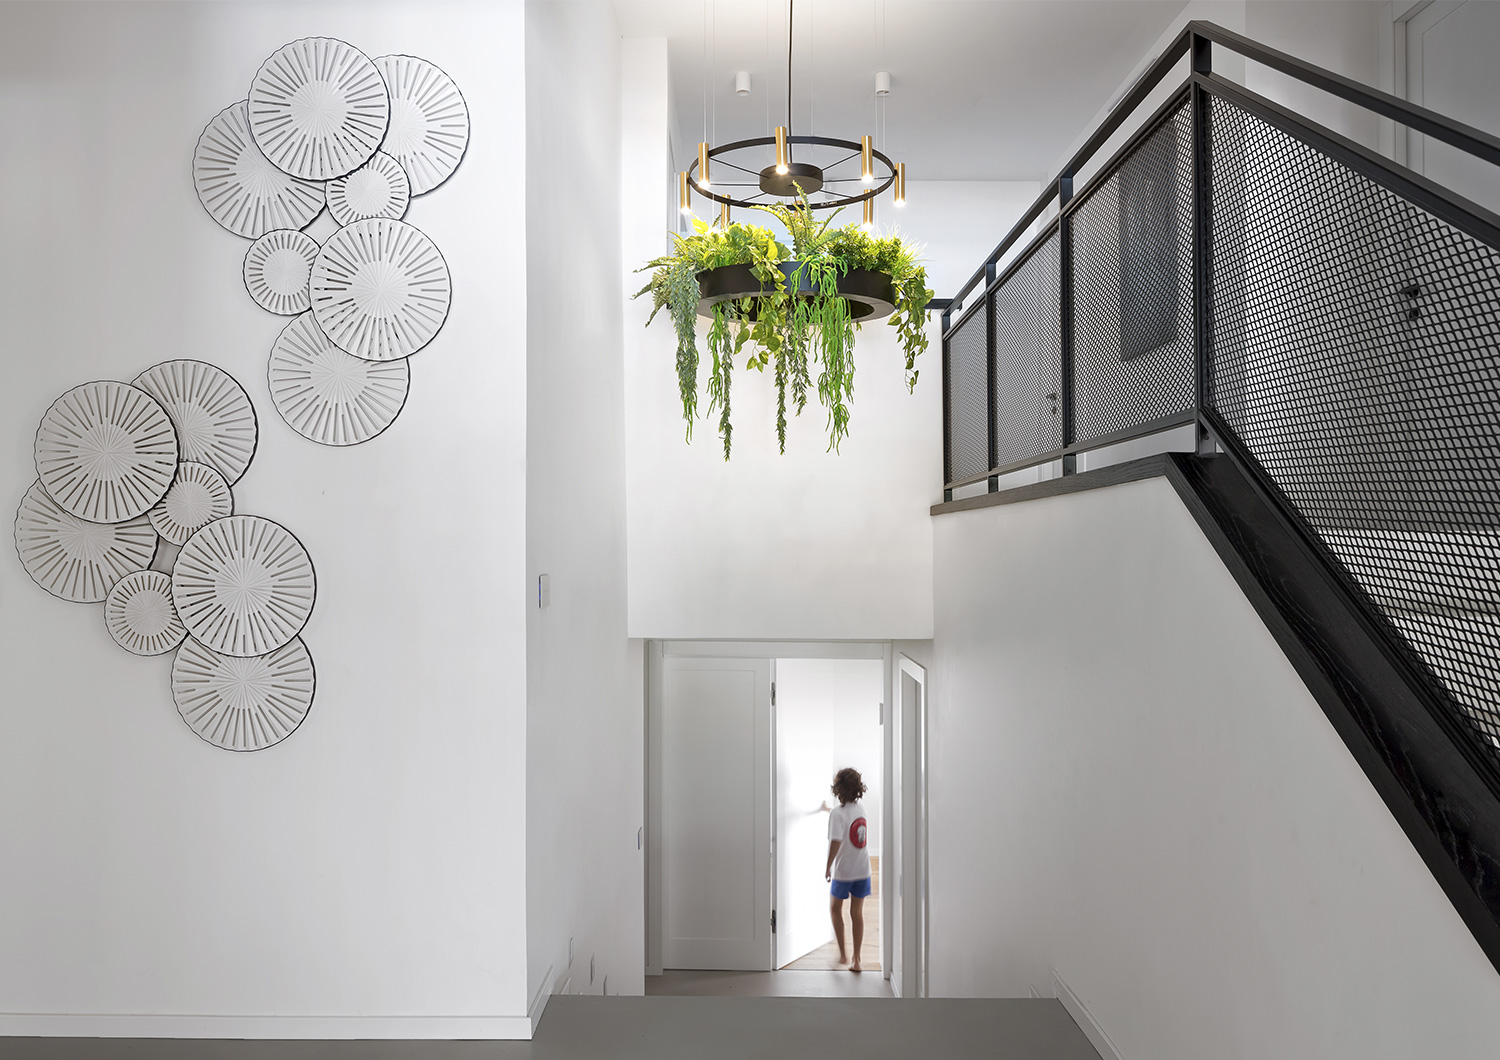 Integrate Lighting And Plants Gallery 01